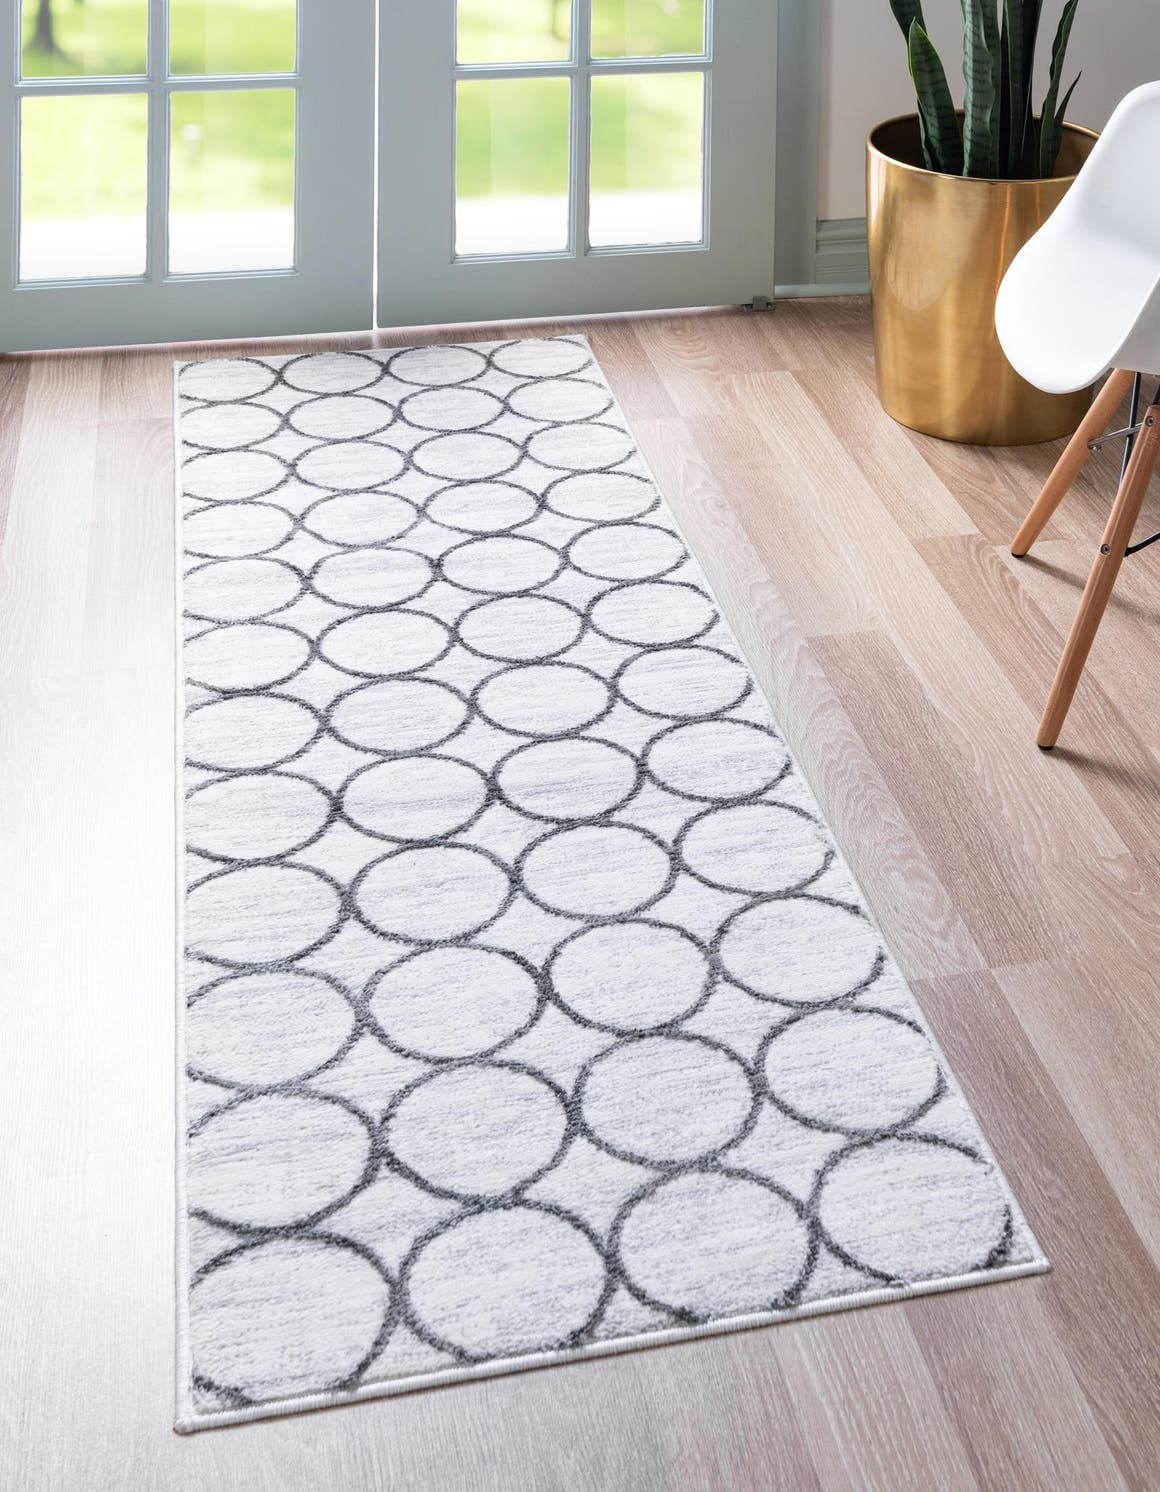 2' x 6' Lattice Trellis Runner Rug main image